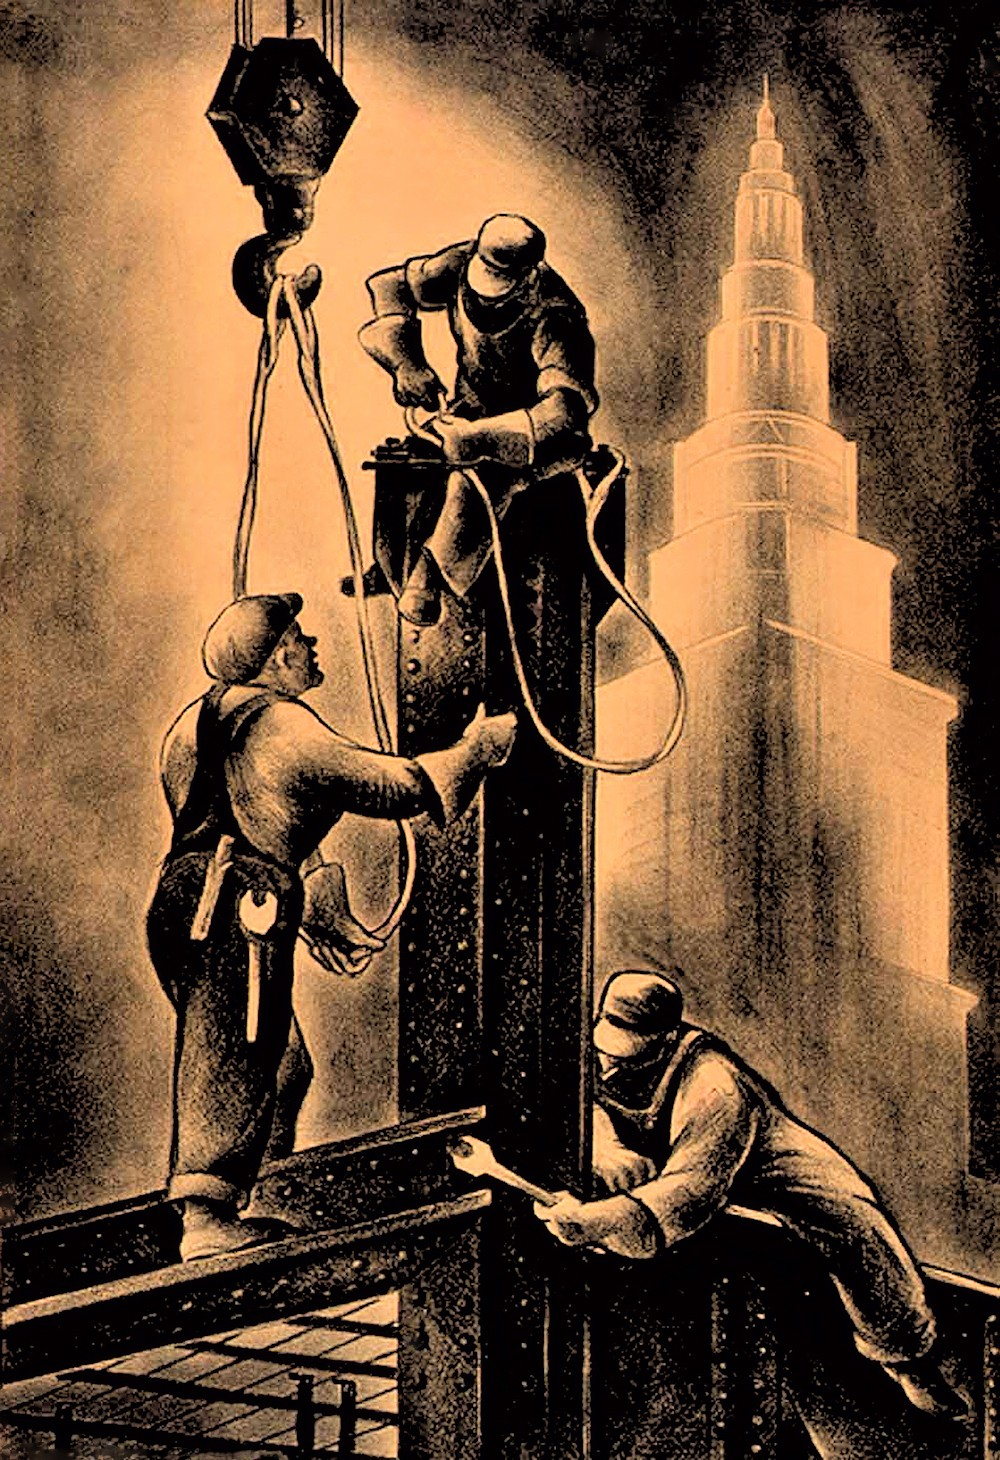 00 Russell Limbach. Steel Workers. 1934